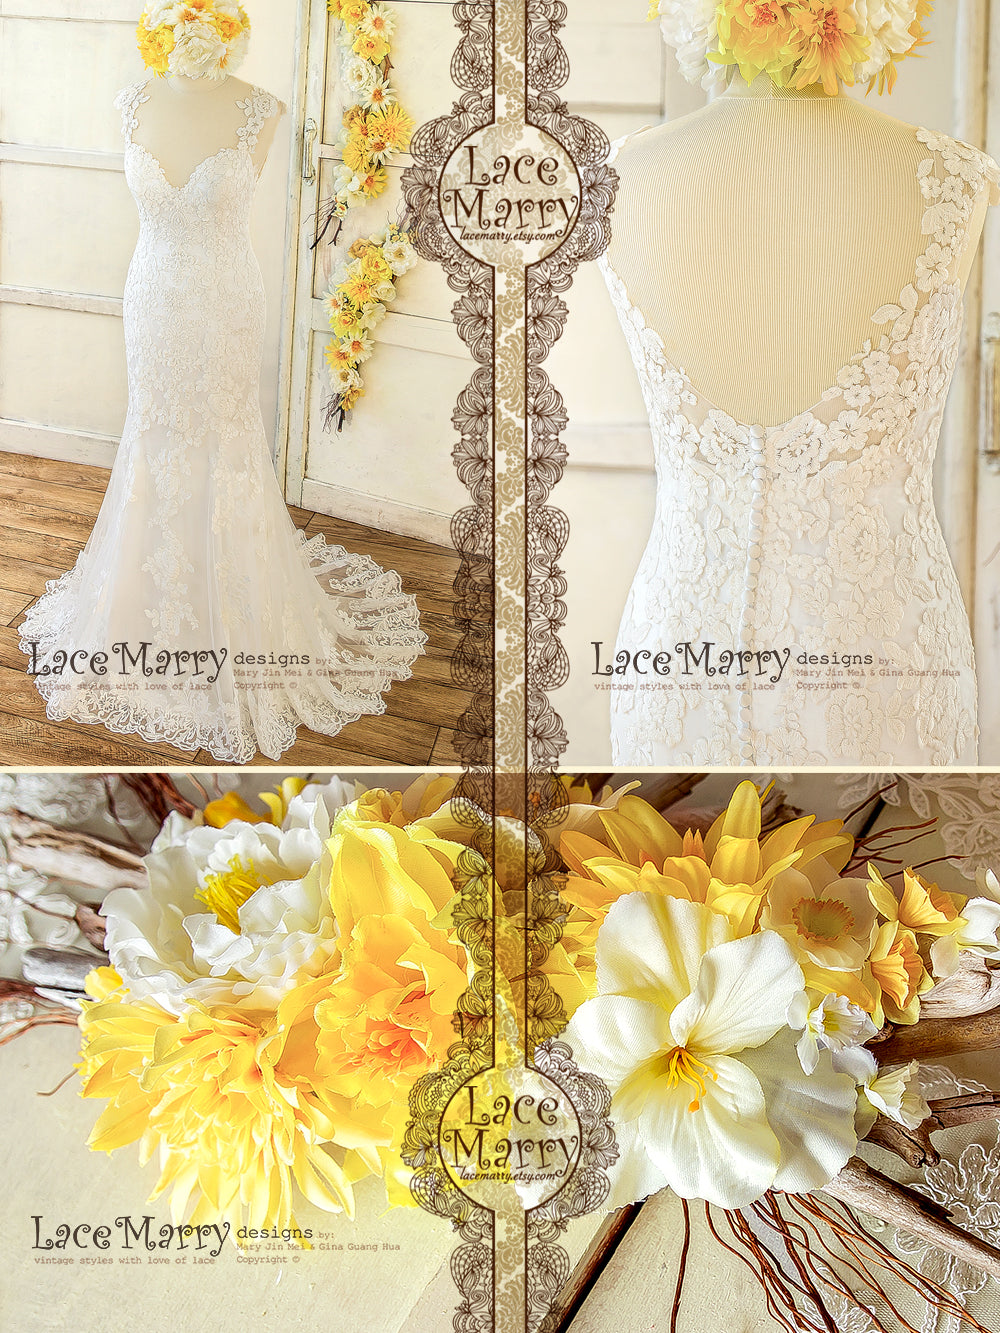 Beautiful Lace Applique Wedding Dress from Light Fabrics